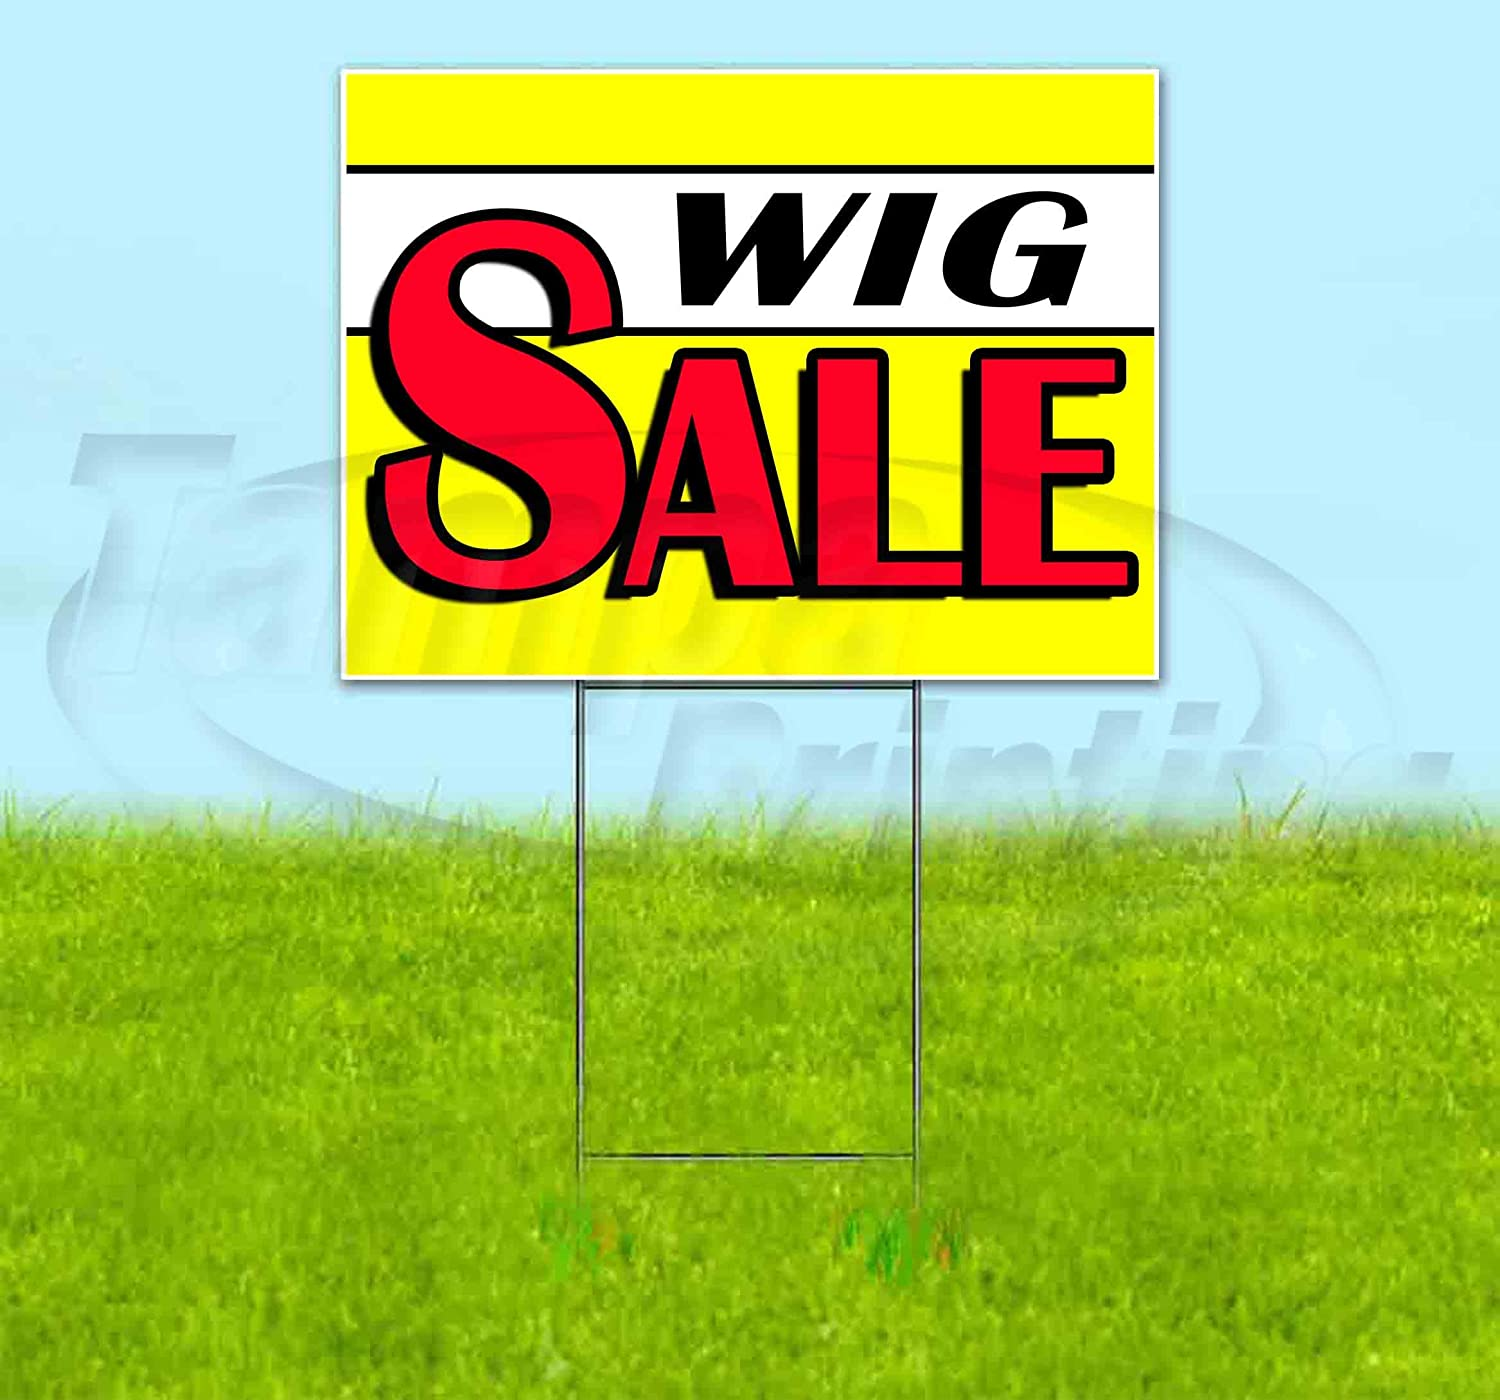 Wig Tulsa Mall Sale Opening large release sale Yellow 18